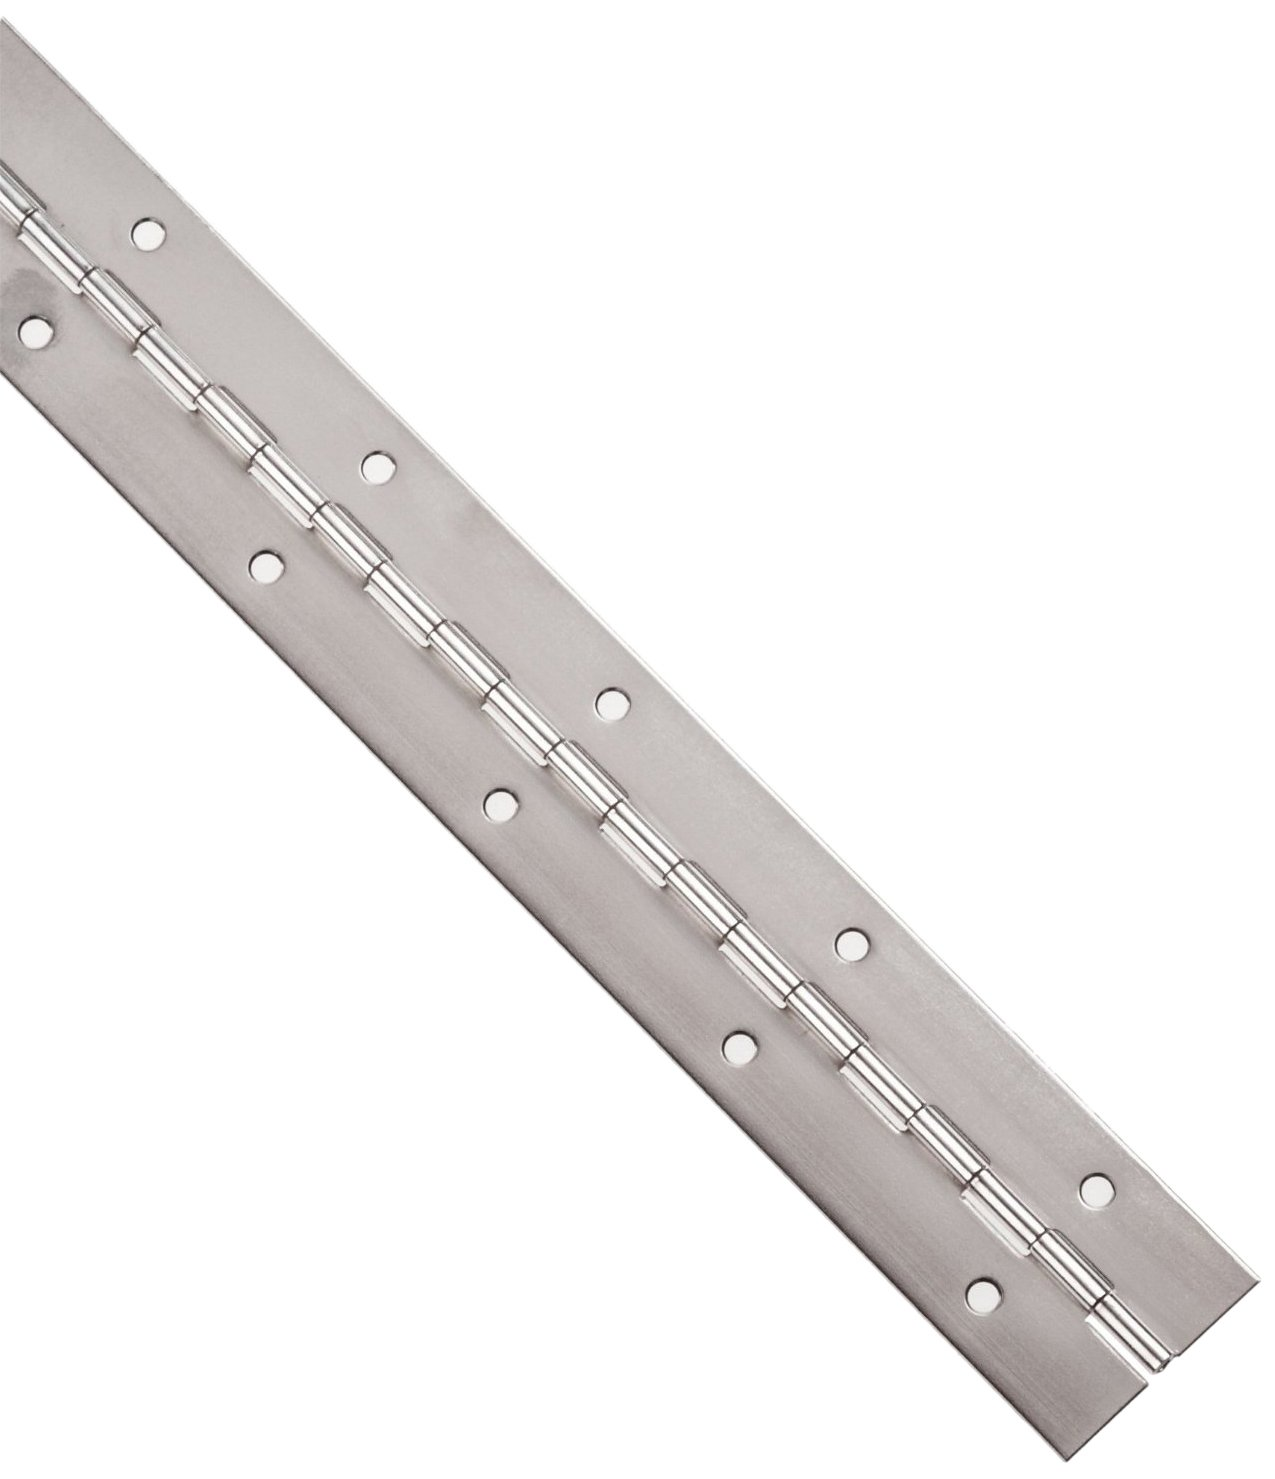 Genuine Free Shipping Stainless Ranking TOP4 Steel 304 Continuous Hinge Polished Holes with Finish